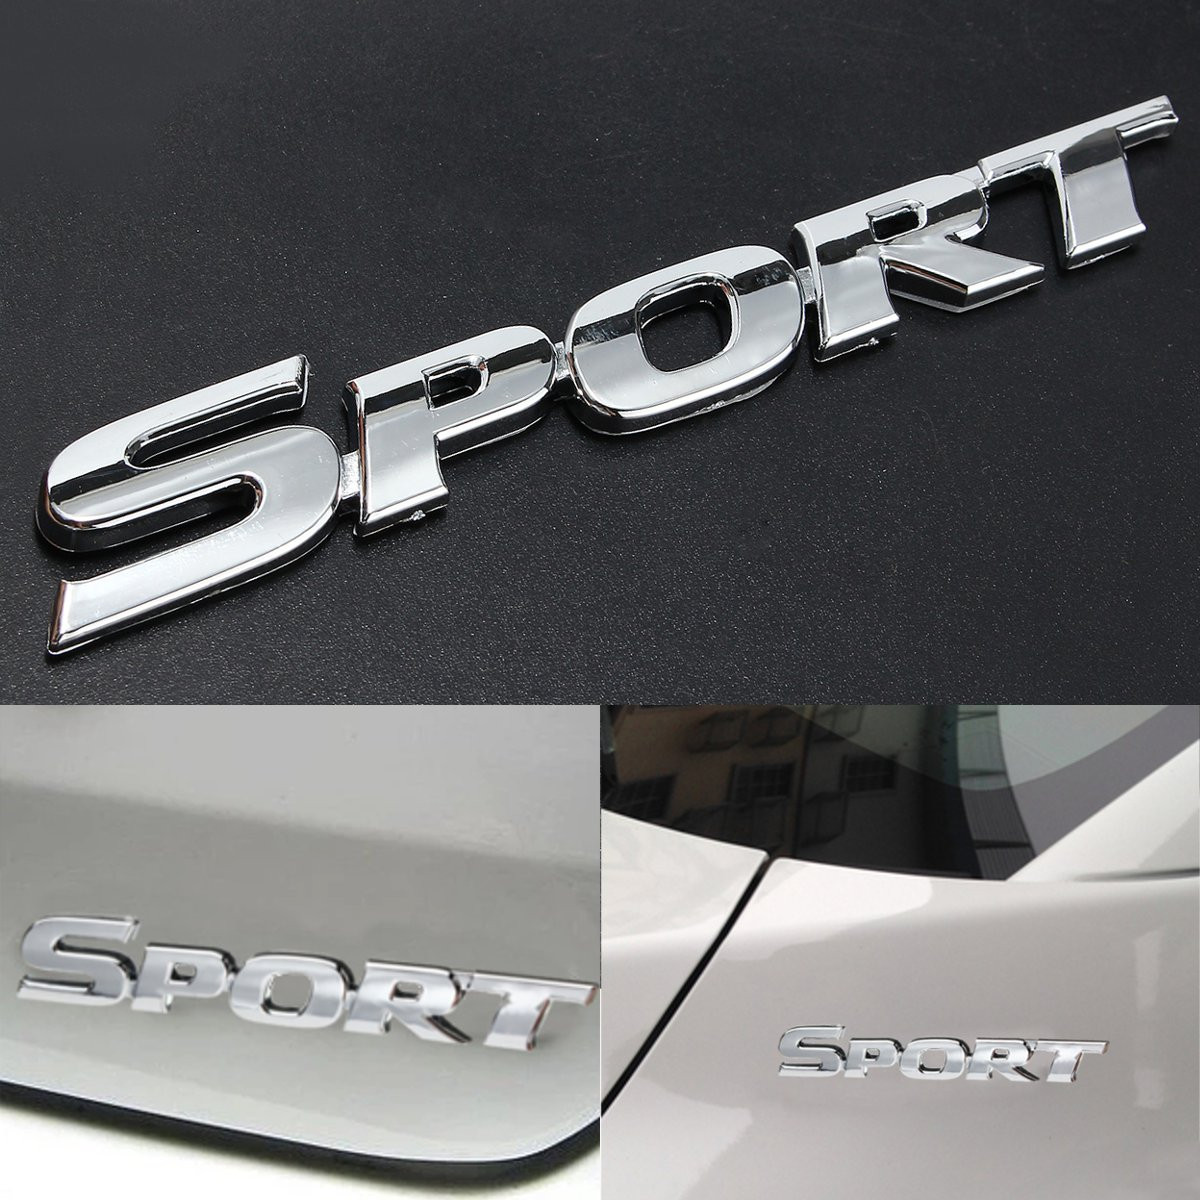 3D SPORT Chrome ABS Car Trunk Badge Emblem Decor Decals Sticker